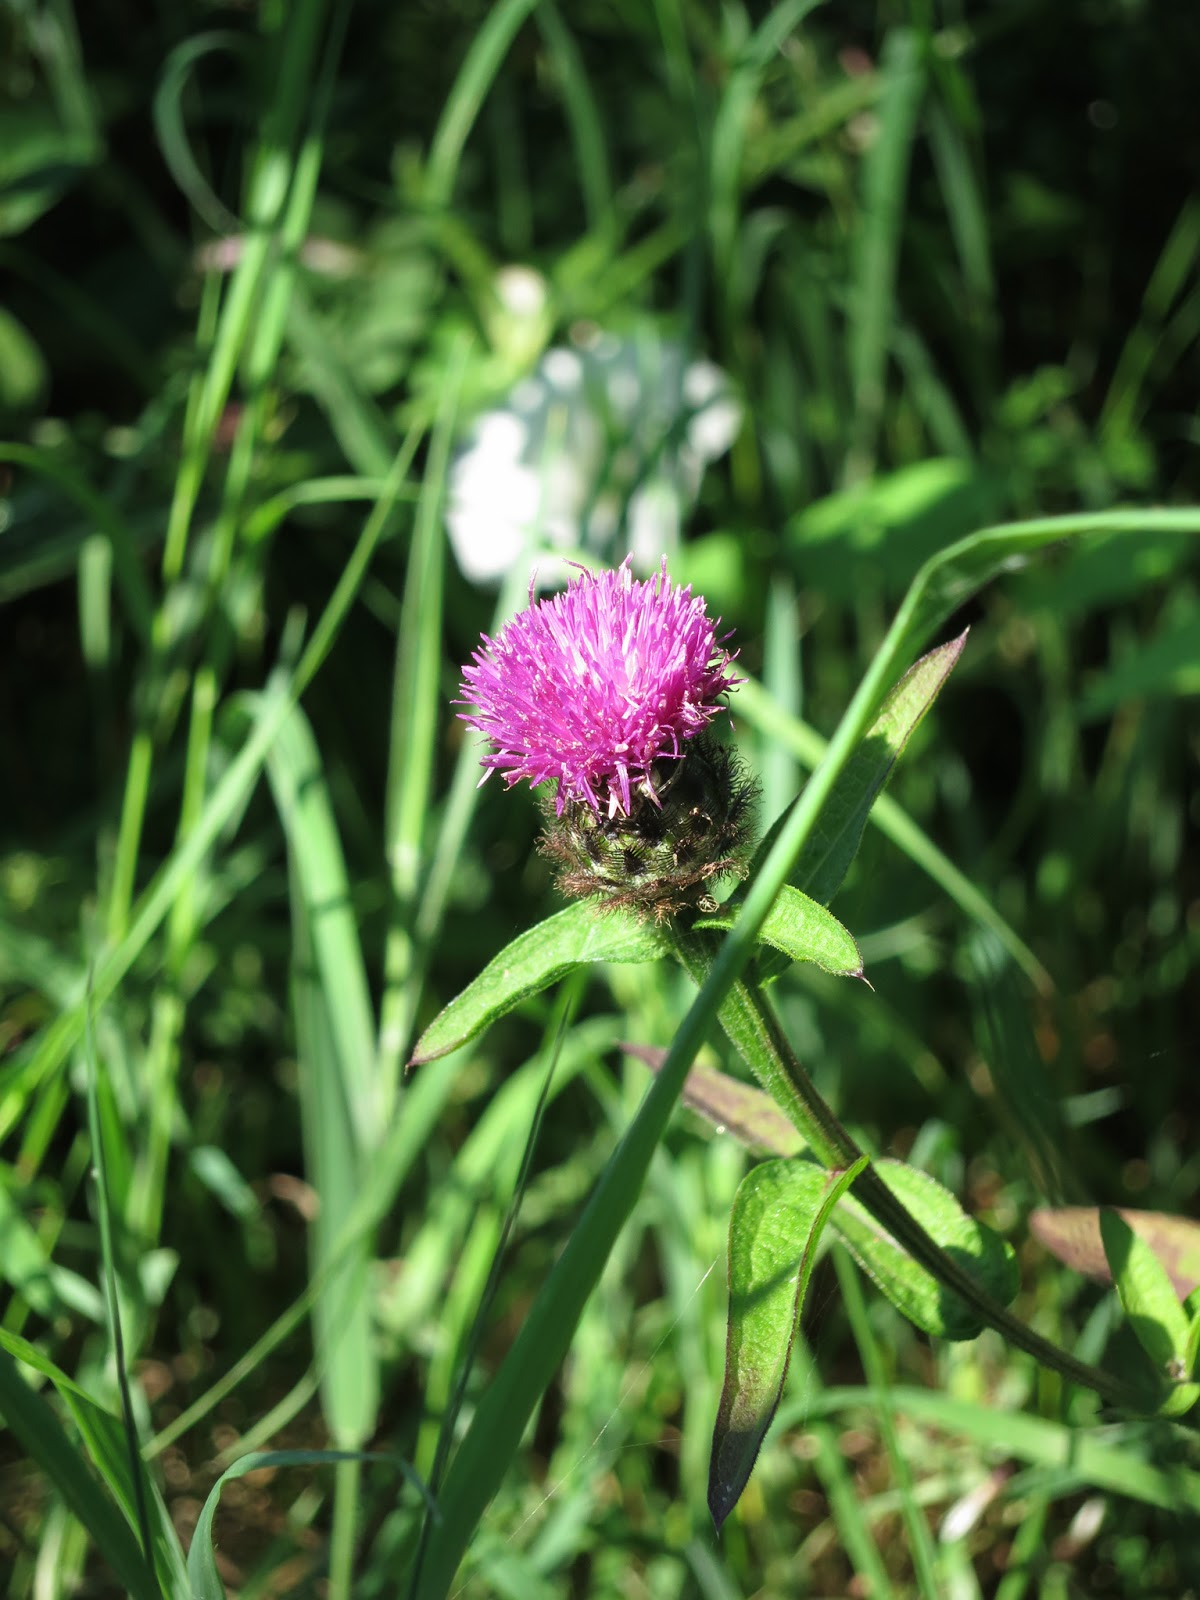 One knapweed flower (purple - like clover on a thistle base) in grass